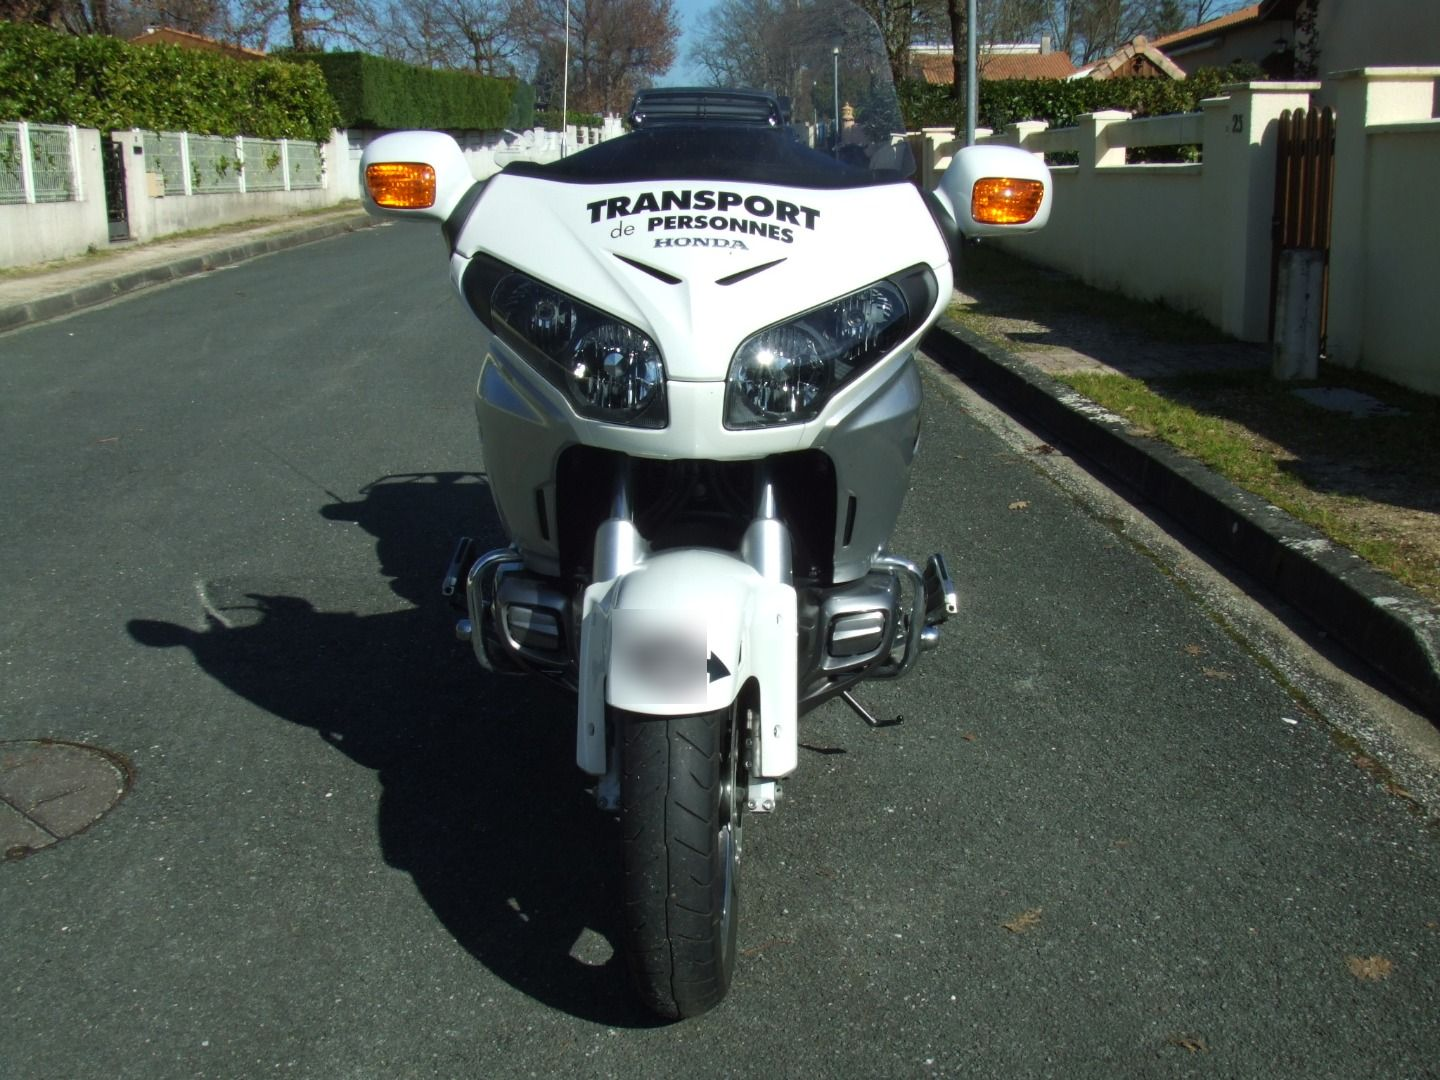 Motorcycle taxi Bordeaux: Honda